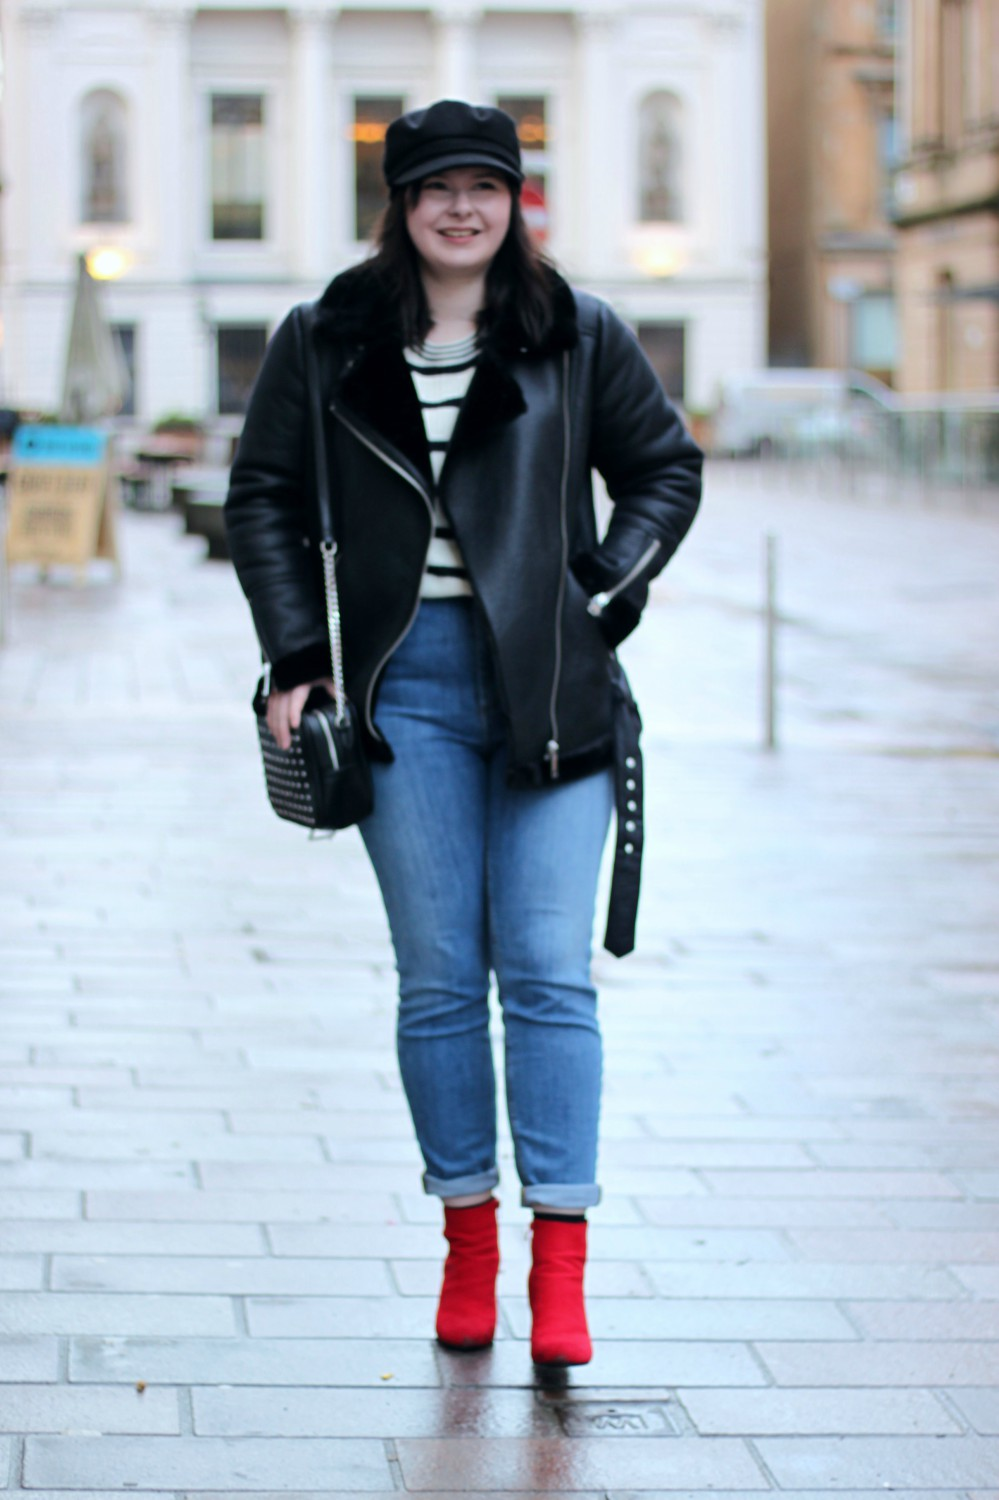 Aviator Jacket, Baker Boy Hat, Red Boots